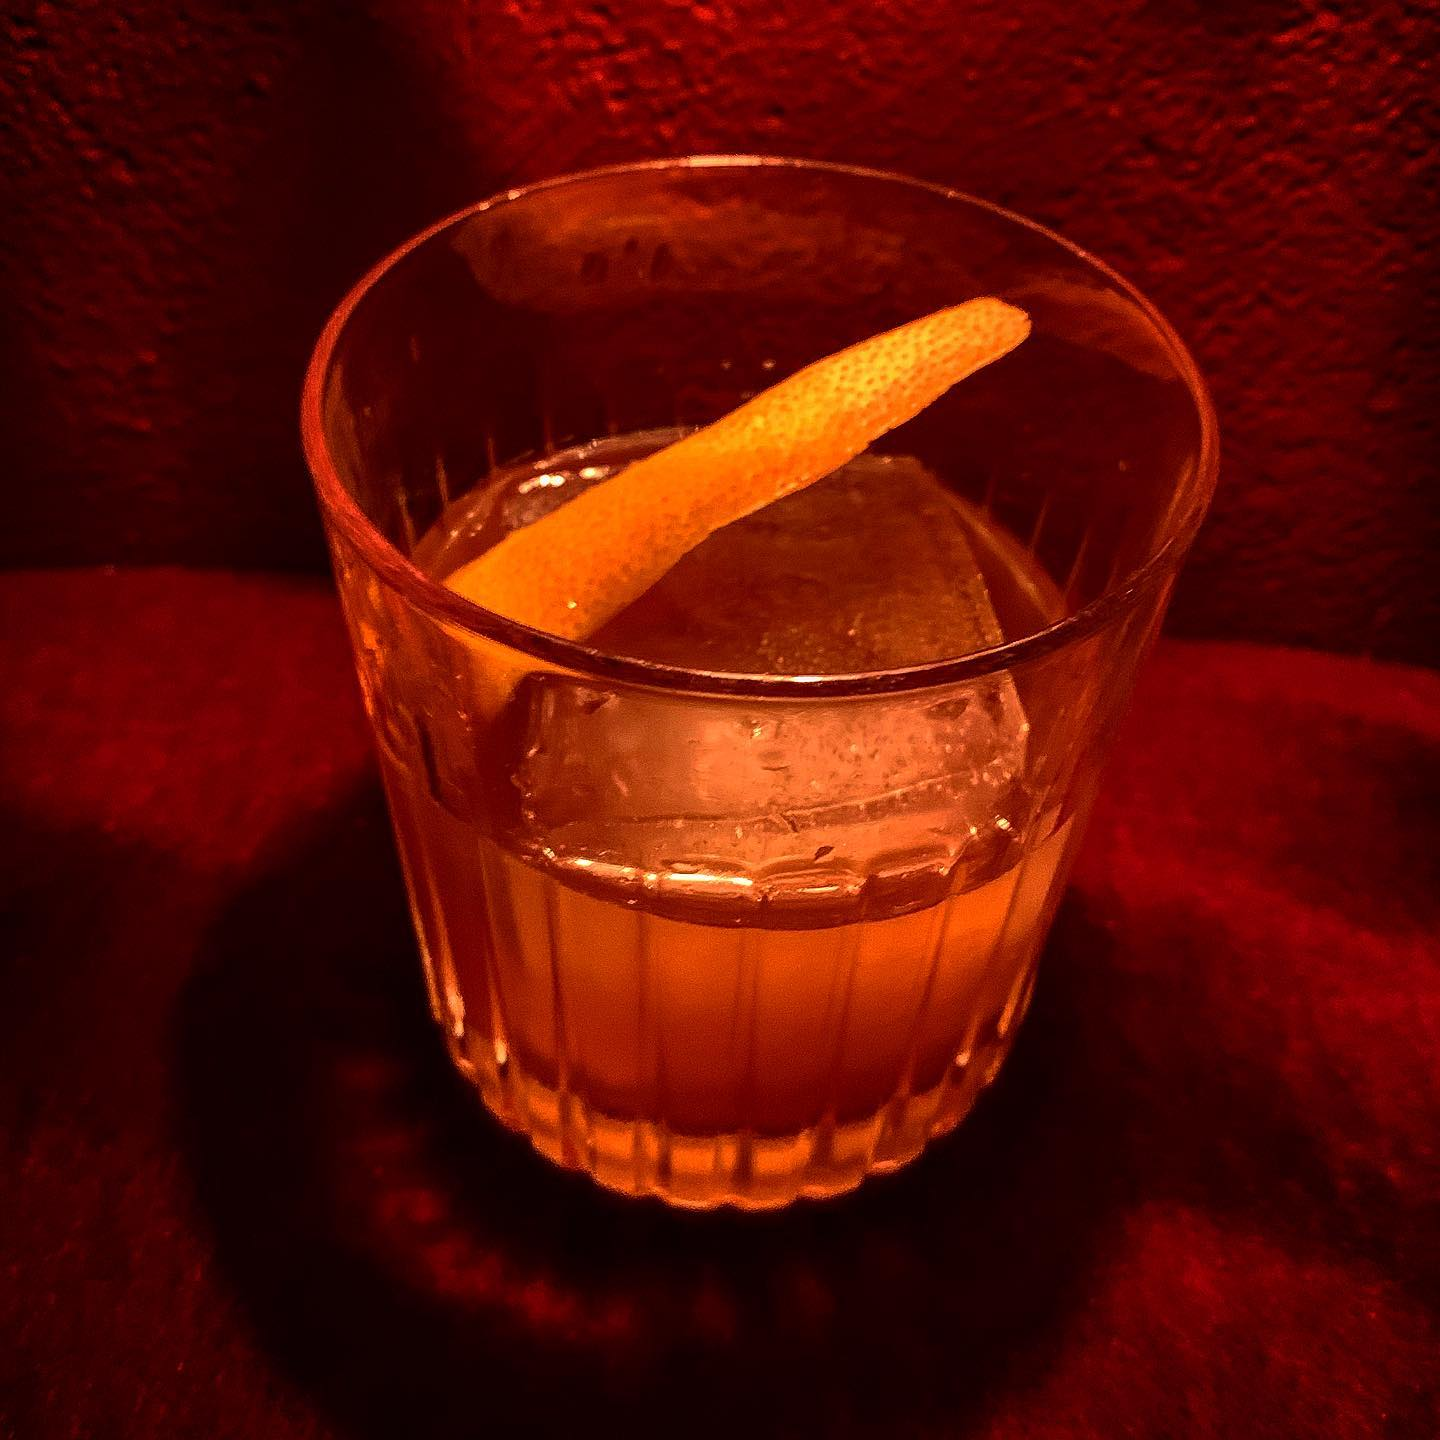 Veckans Cocktail:Mangrove -Rom, Cynar, Falernum, Grapefruitjuice #cocktail#cocktails